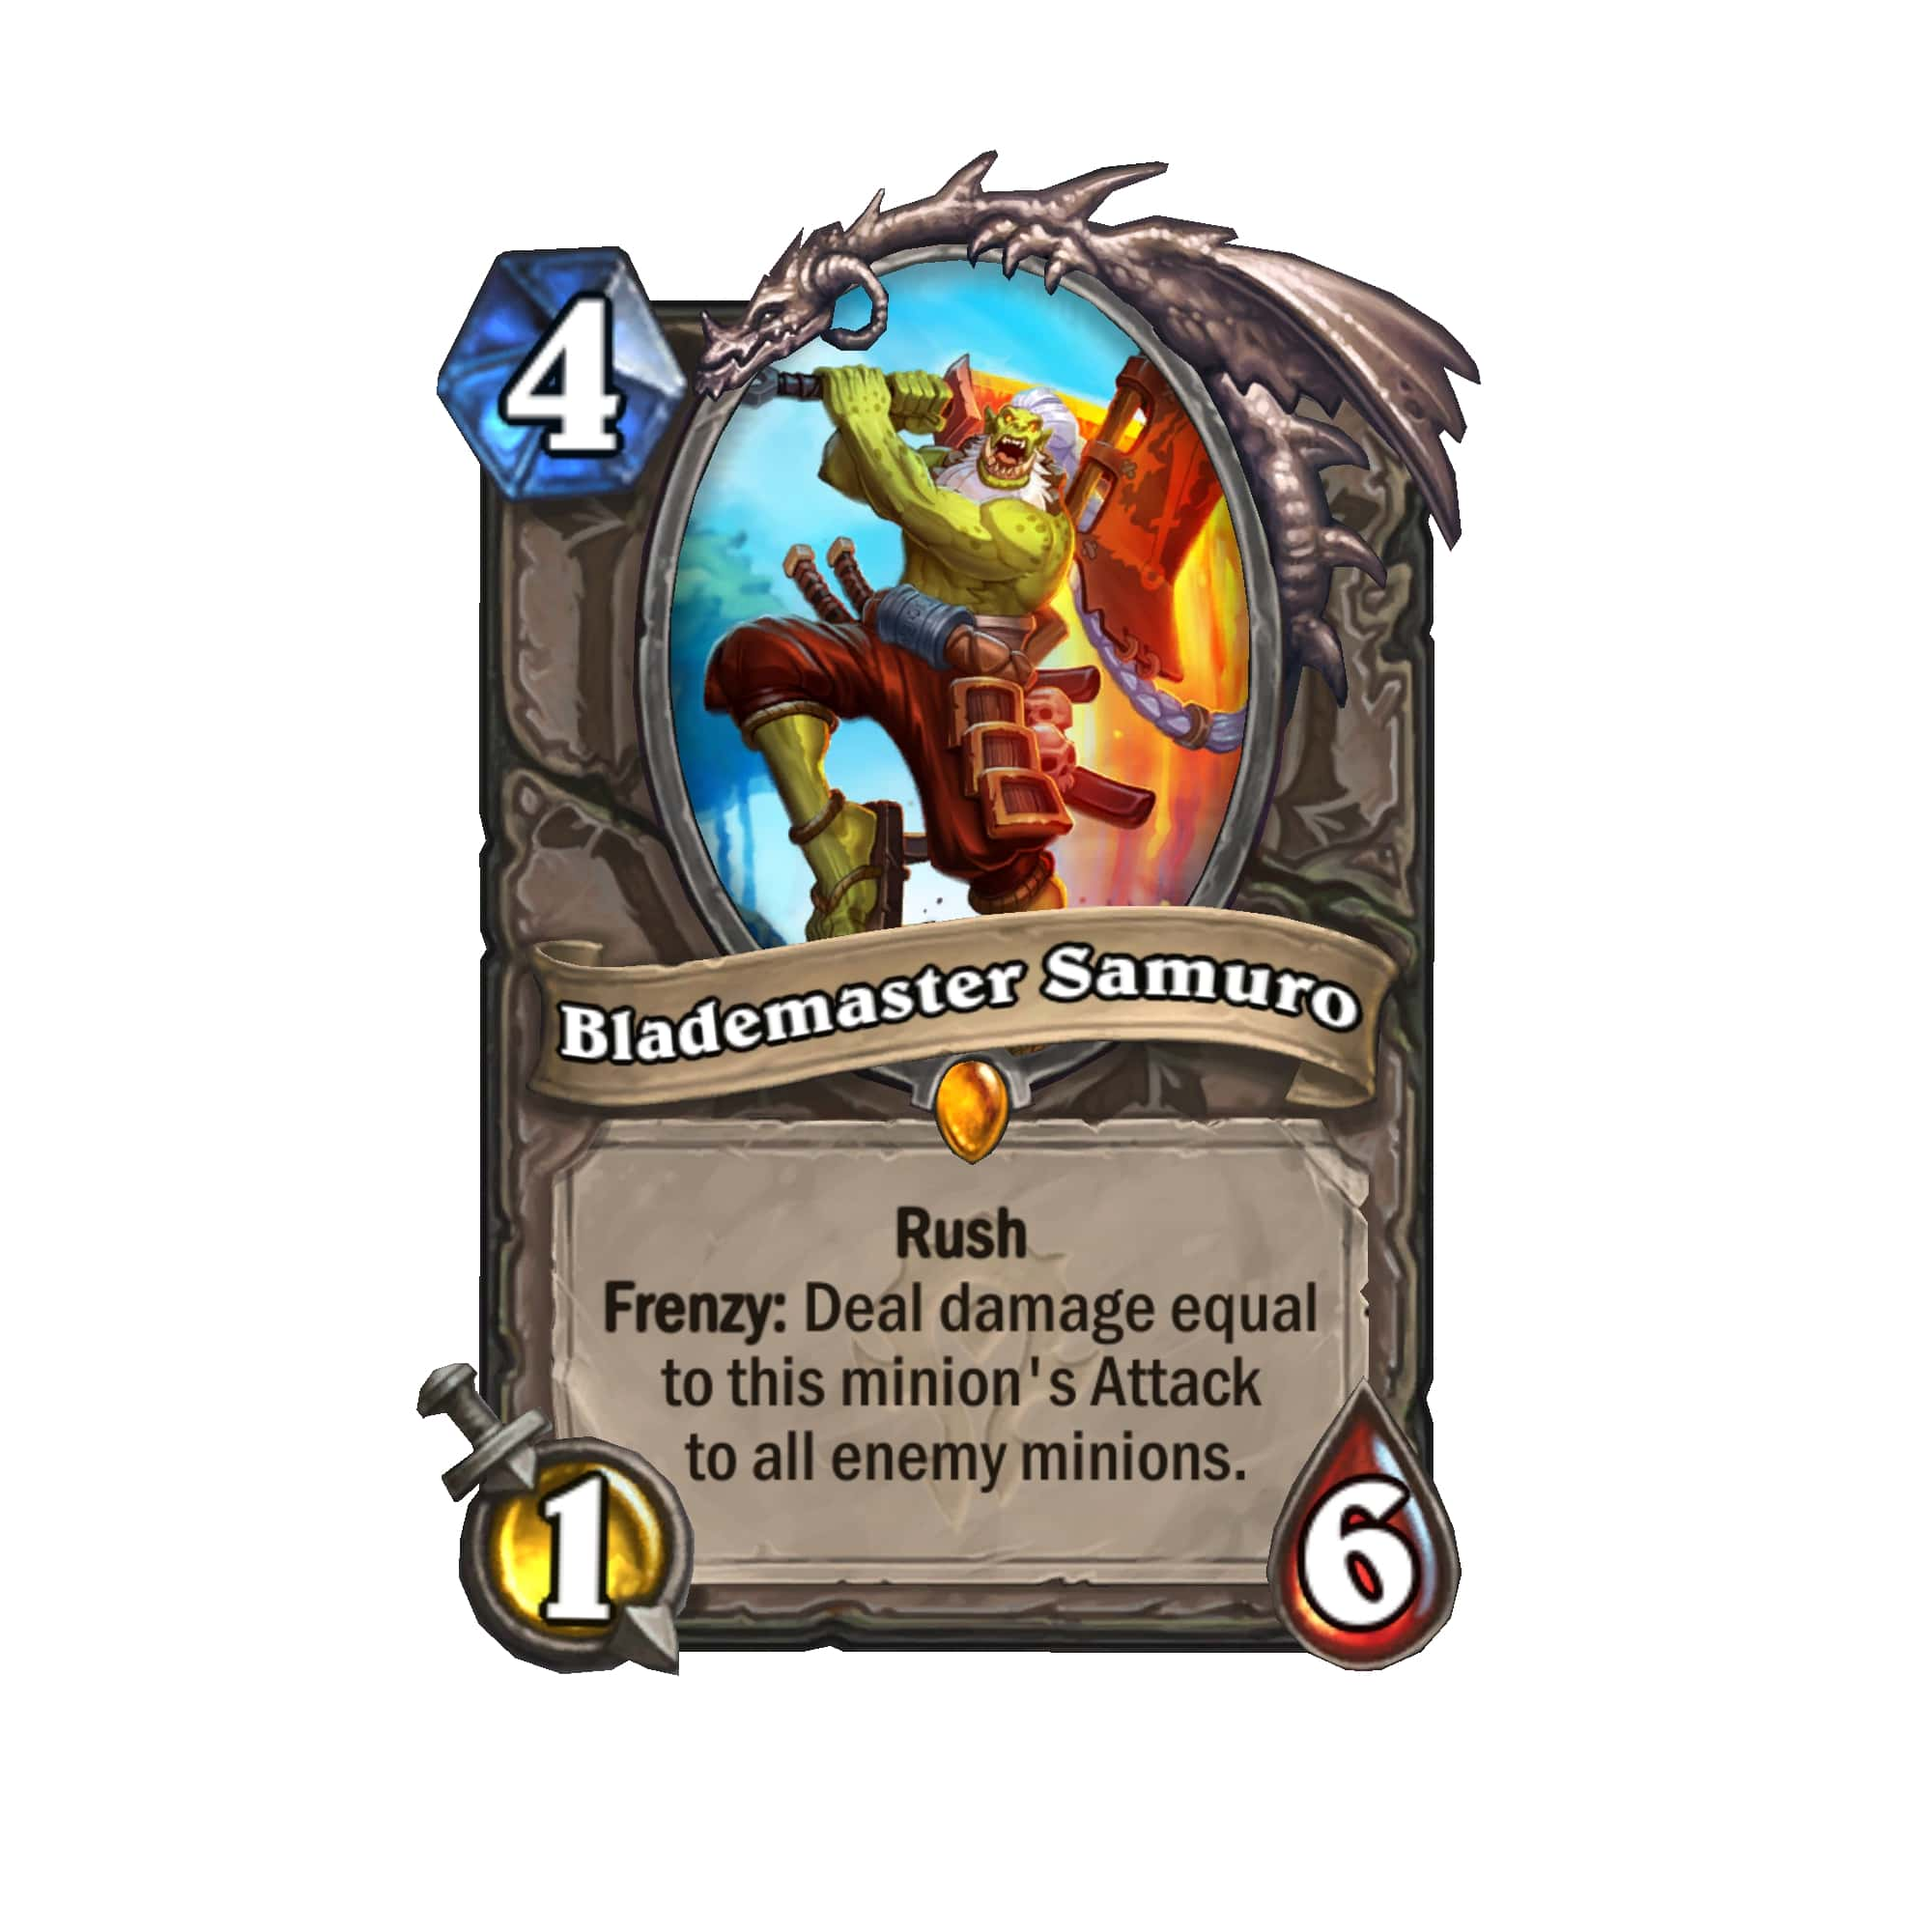 A card from Hearthstone's Forged in the Barrens set